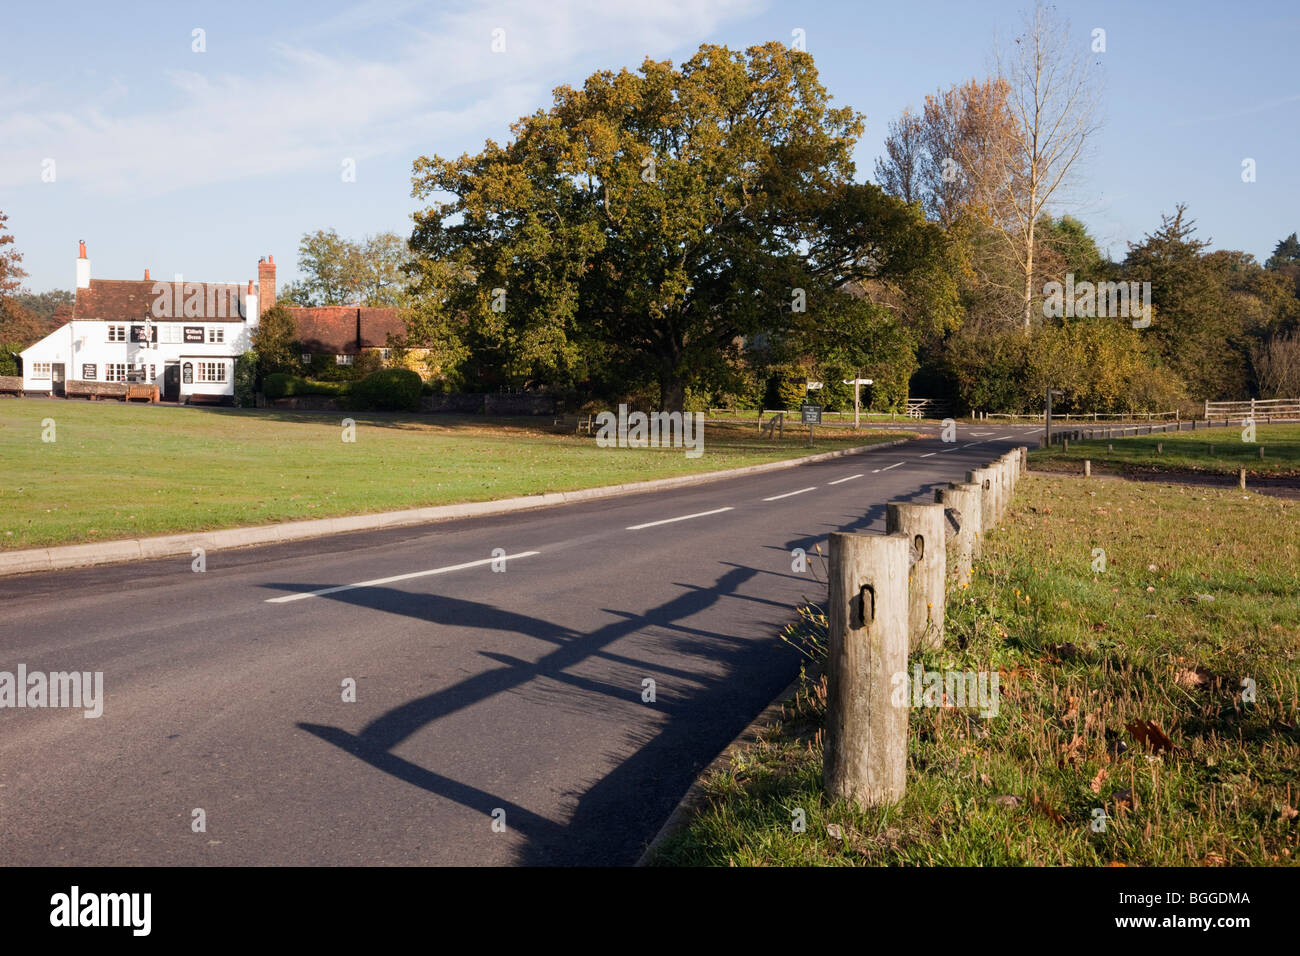 Tilford, Surrey, England, UK, Europe. Country road and village green - Stock Image